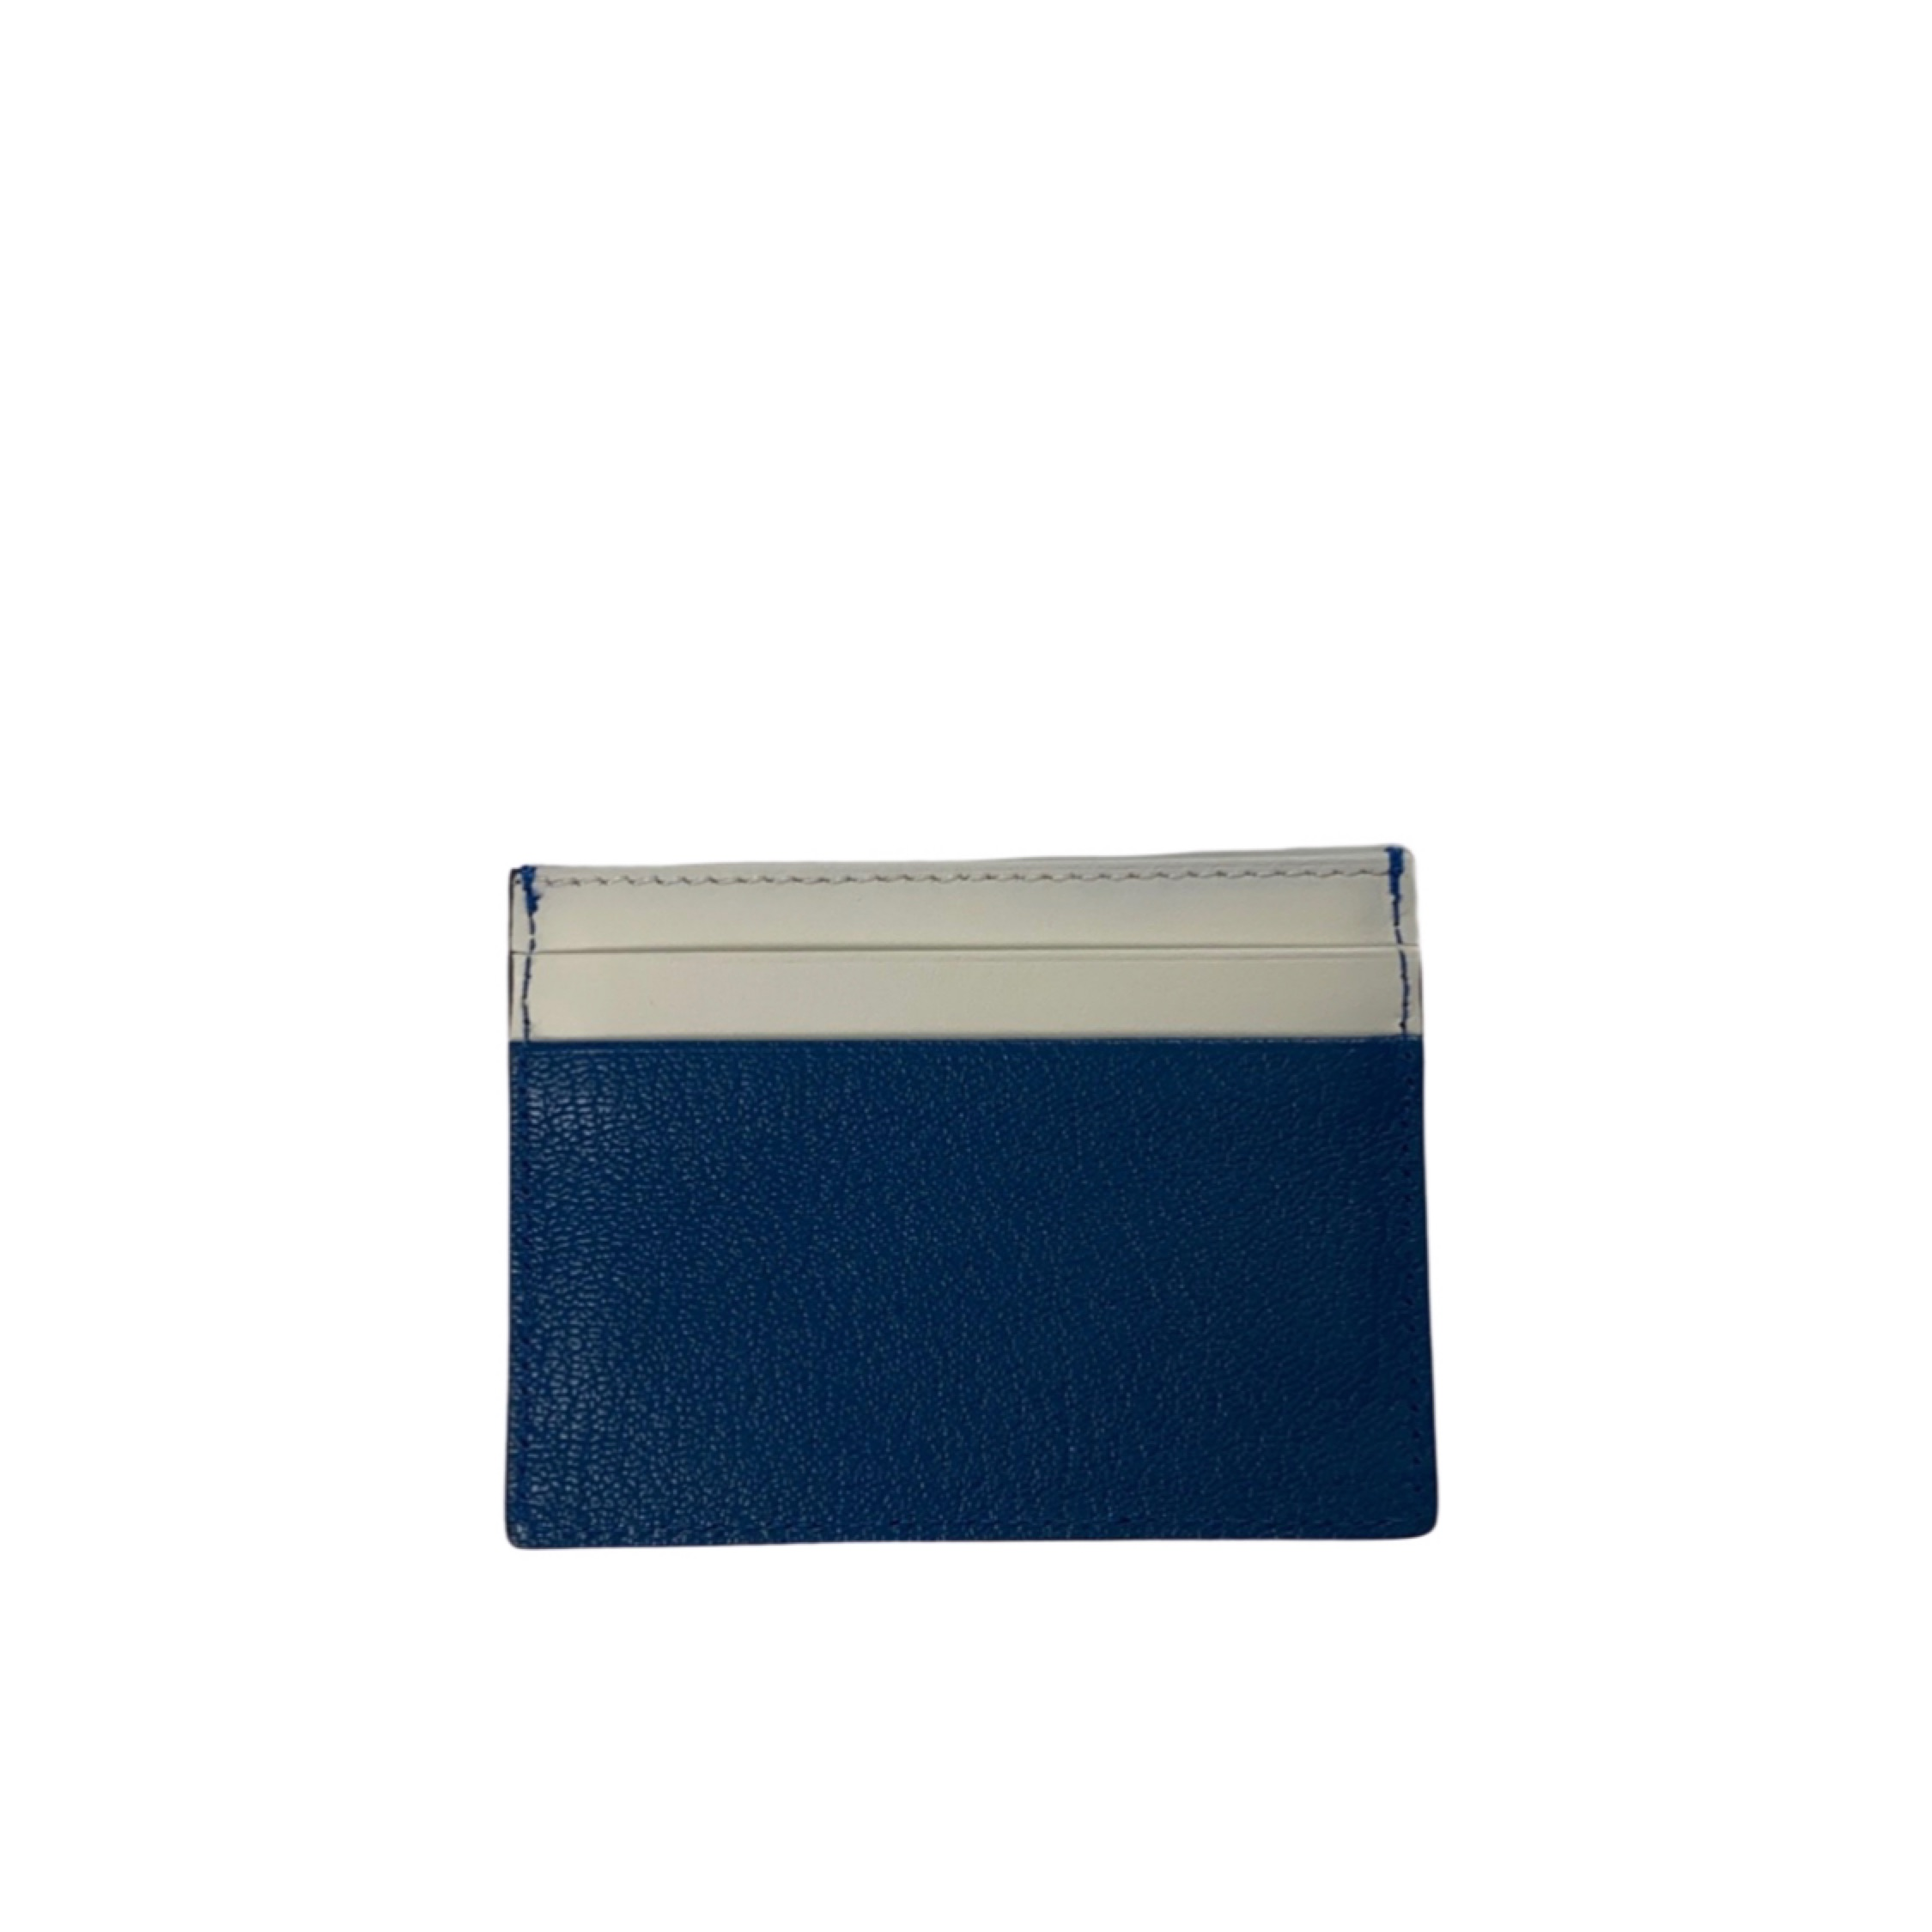 Burberry Blue & White Cardholder Brand New